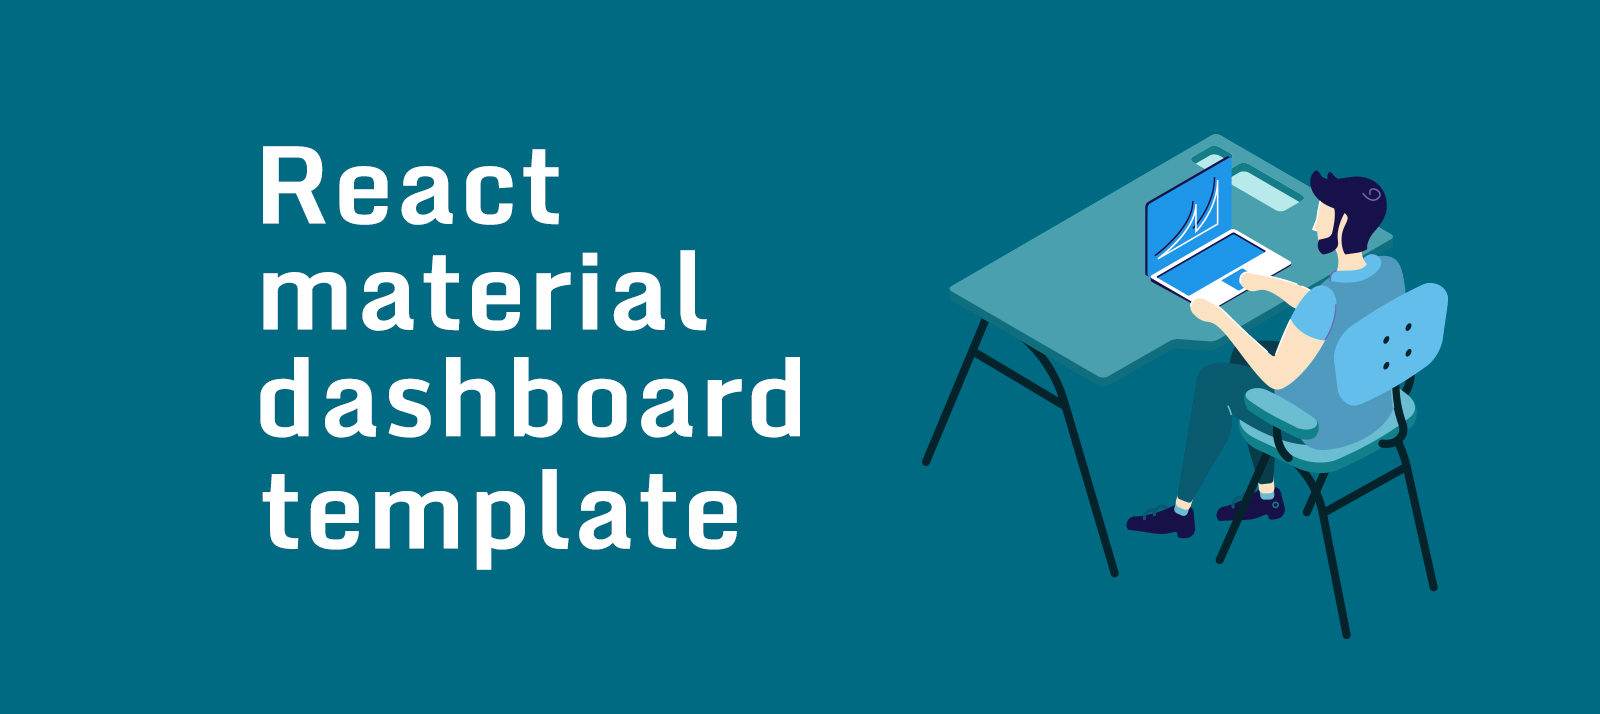 10 React Material Dashboard Templates Sure to Make a Big Impact in 2020